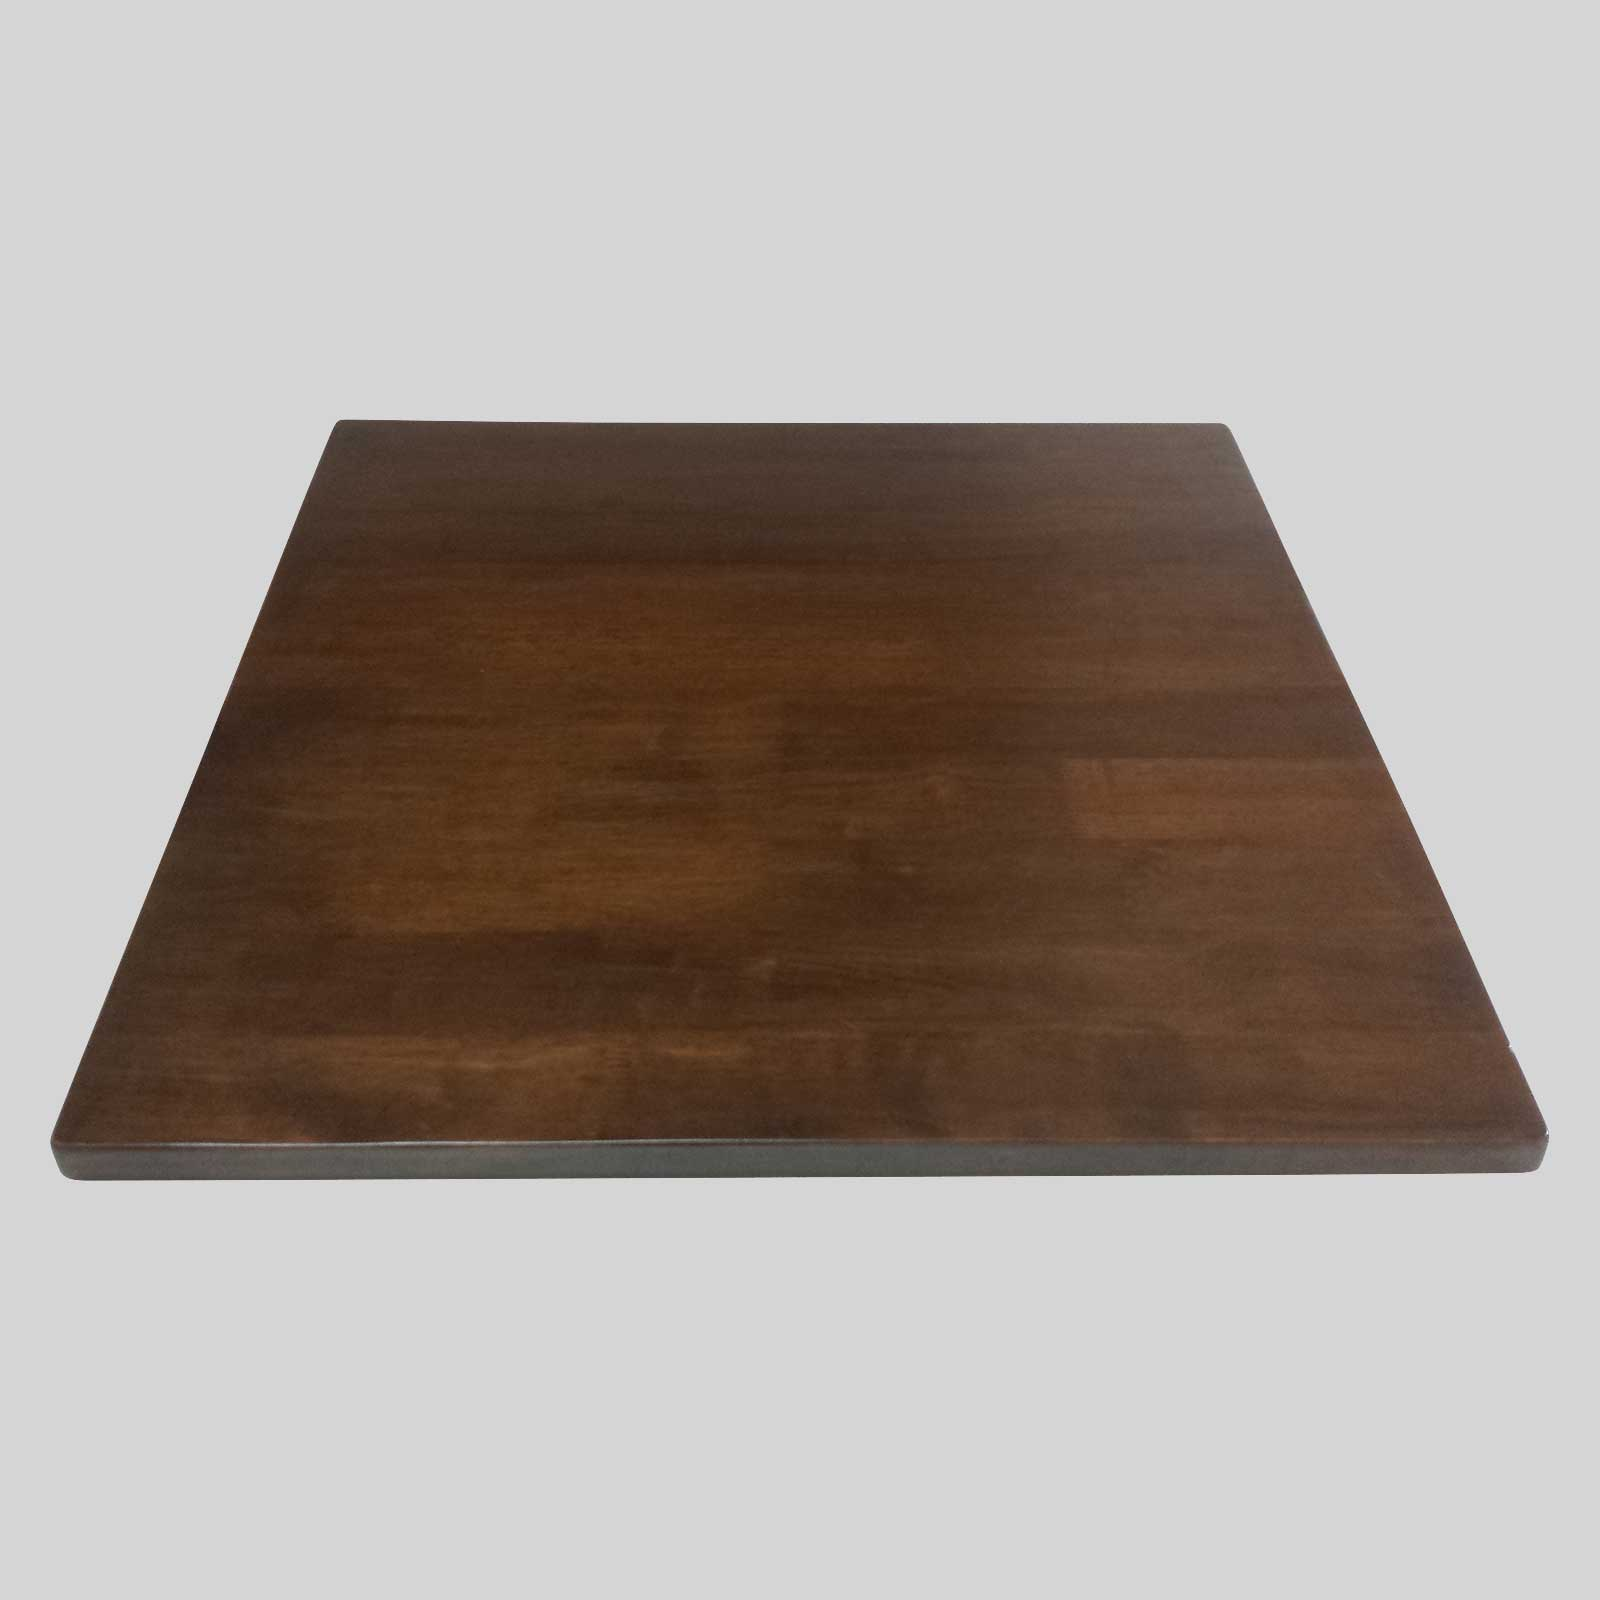 Rubberwood Table Top   Walnut. Restaurant Table Top   Rubberwood   Concept Collections